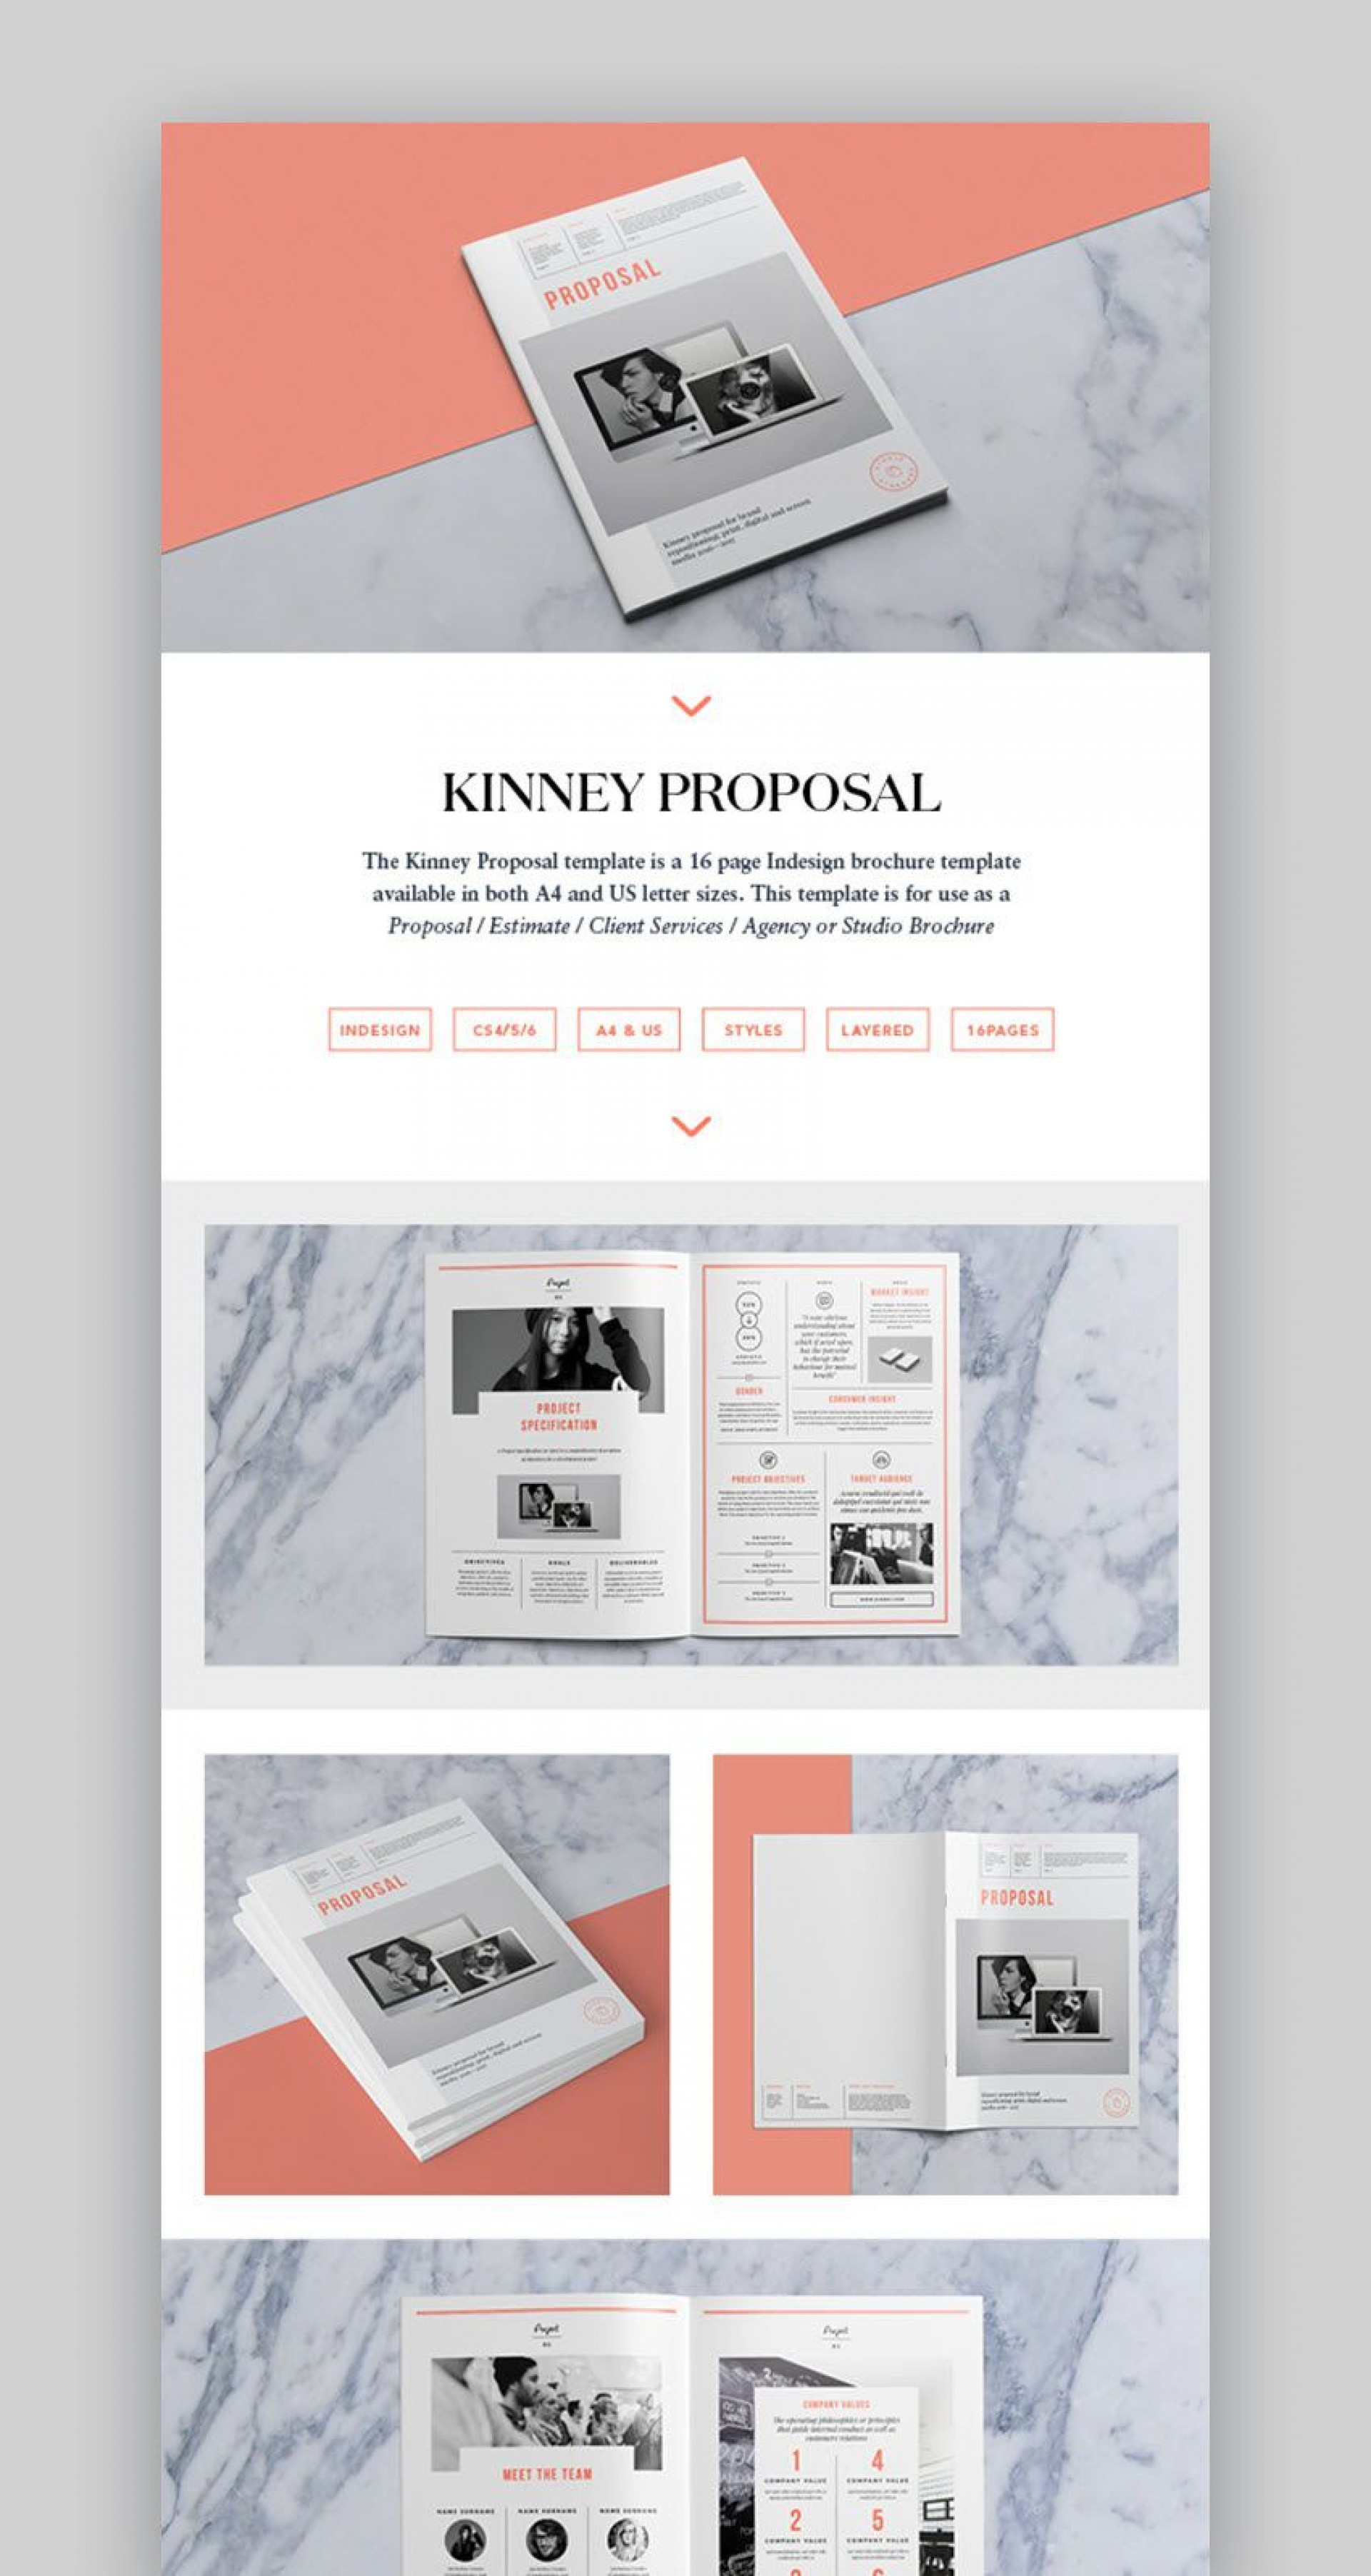 006 Incredible Graphic Design Proposal Template Indesign High Def  Free1920